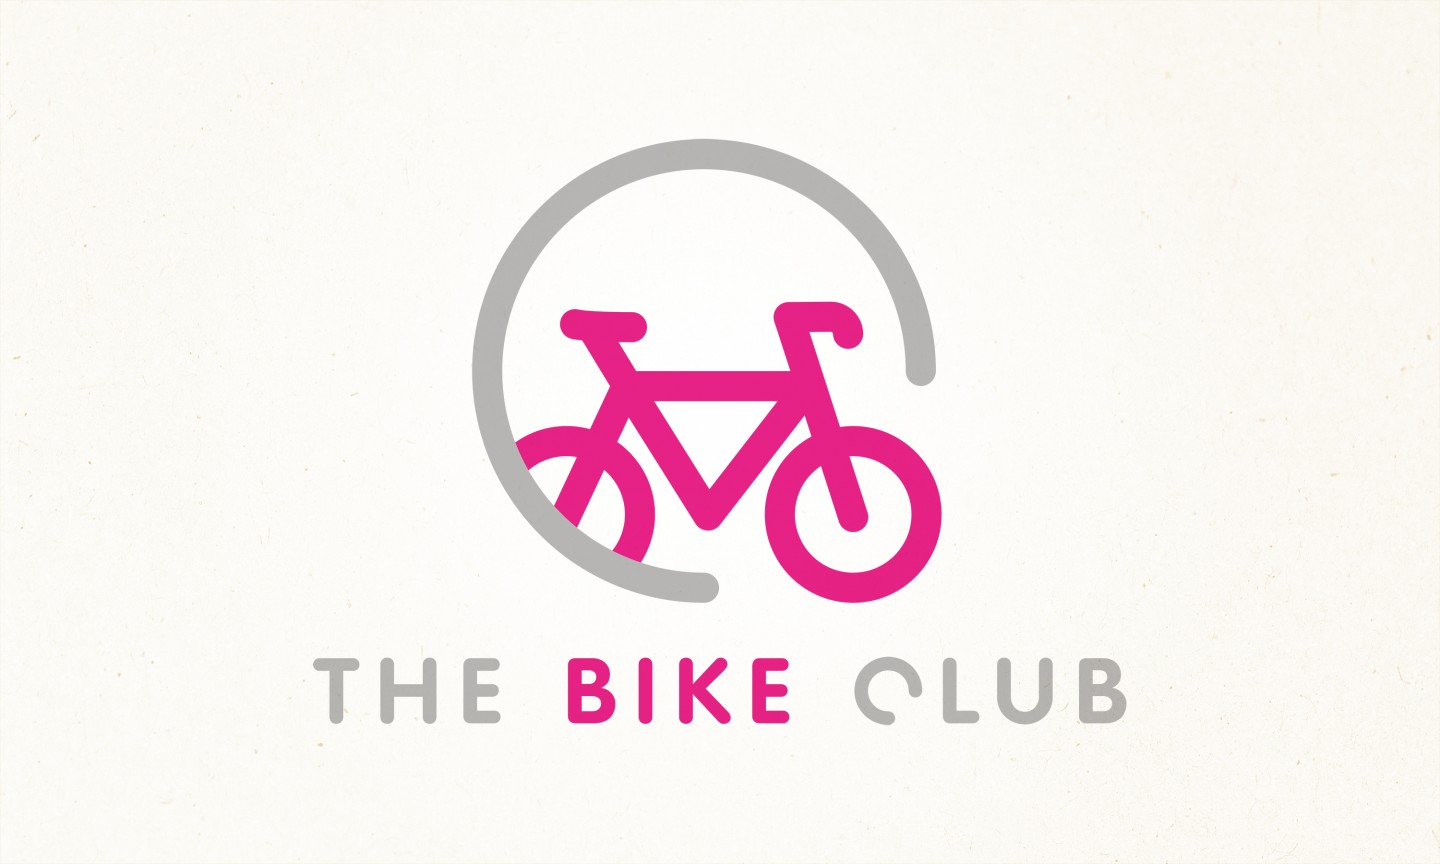 Logo and brand design for the Bike Club